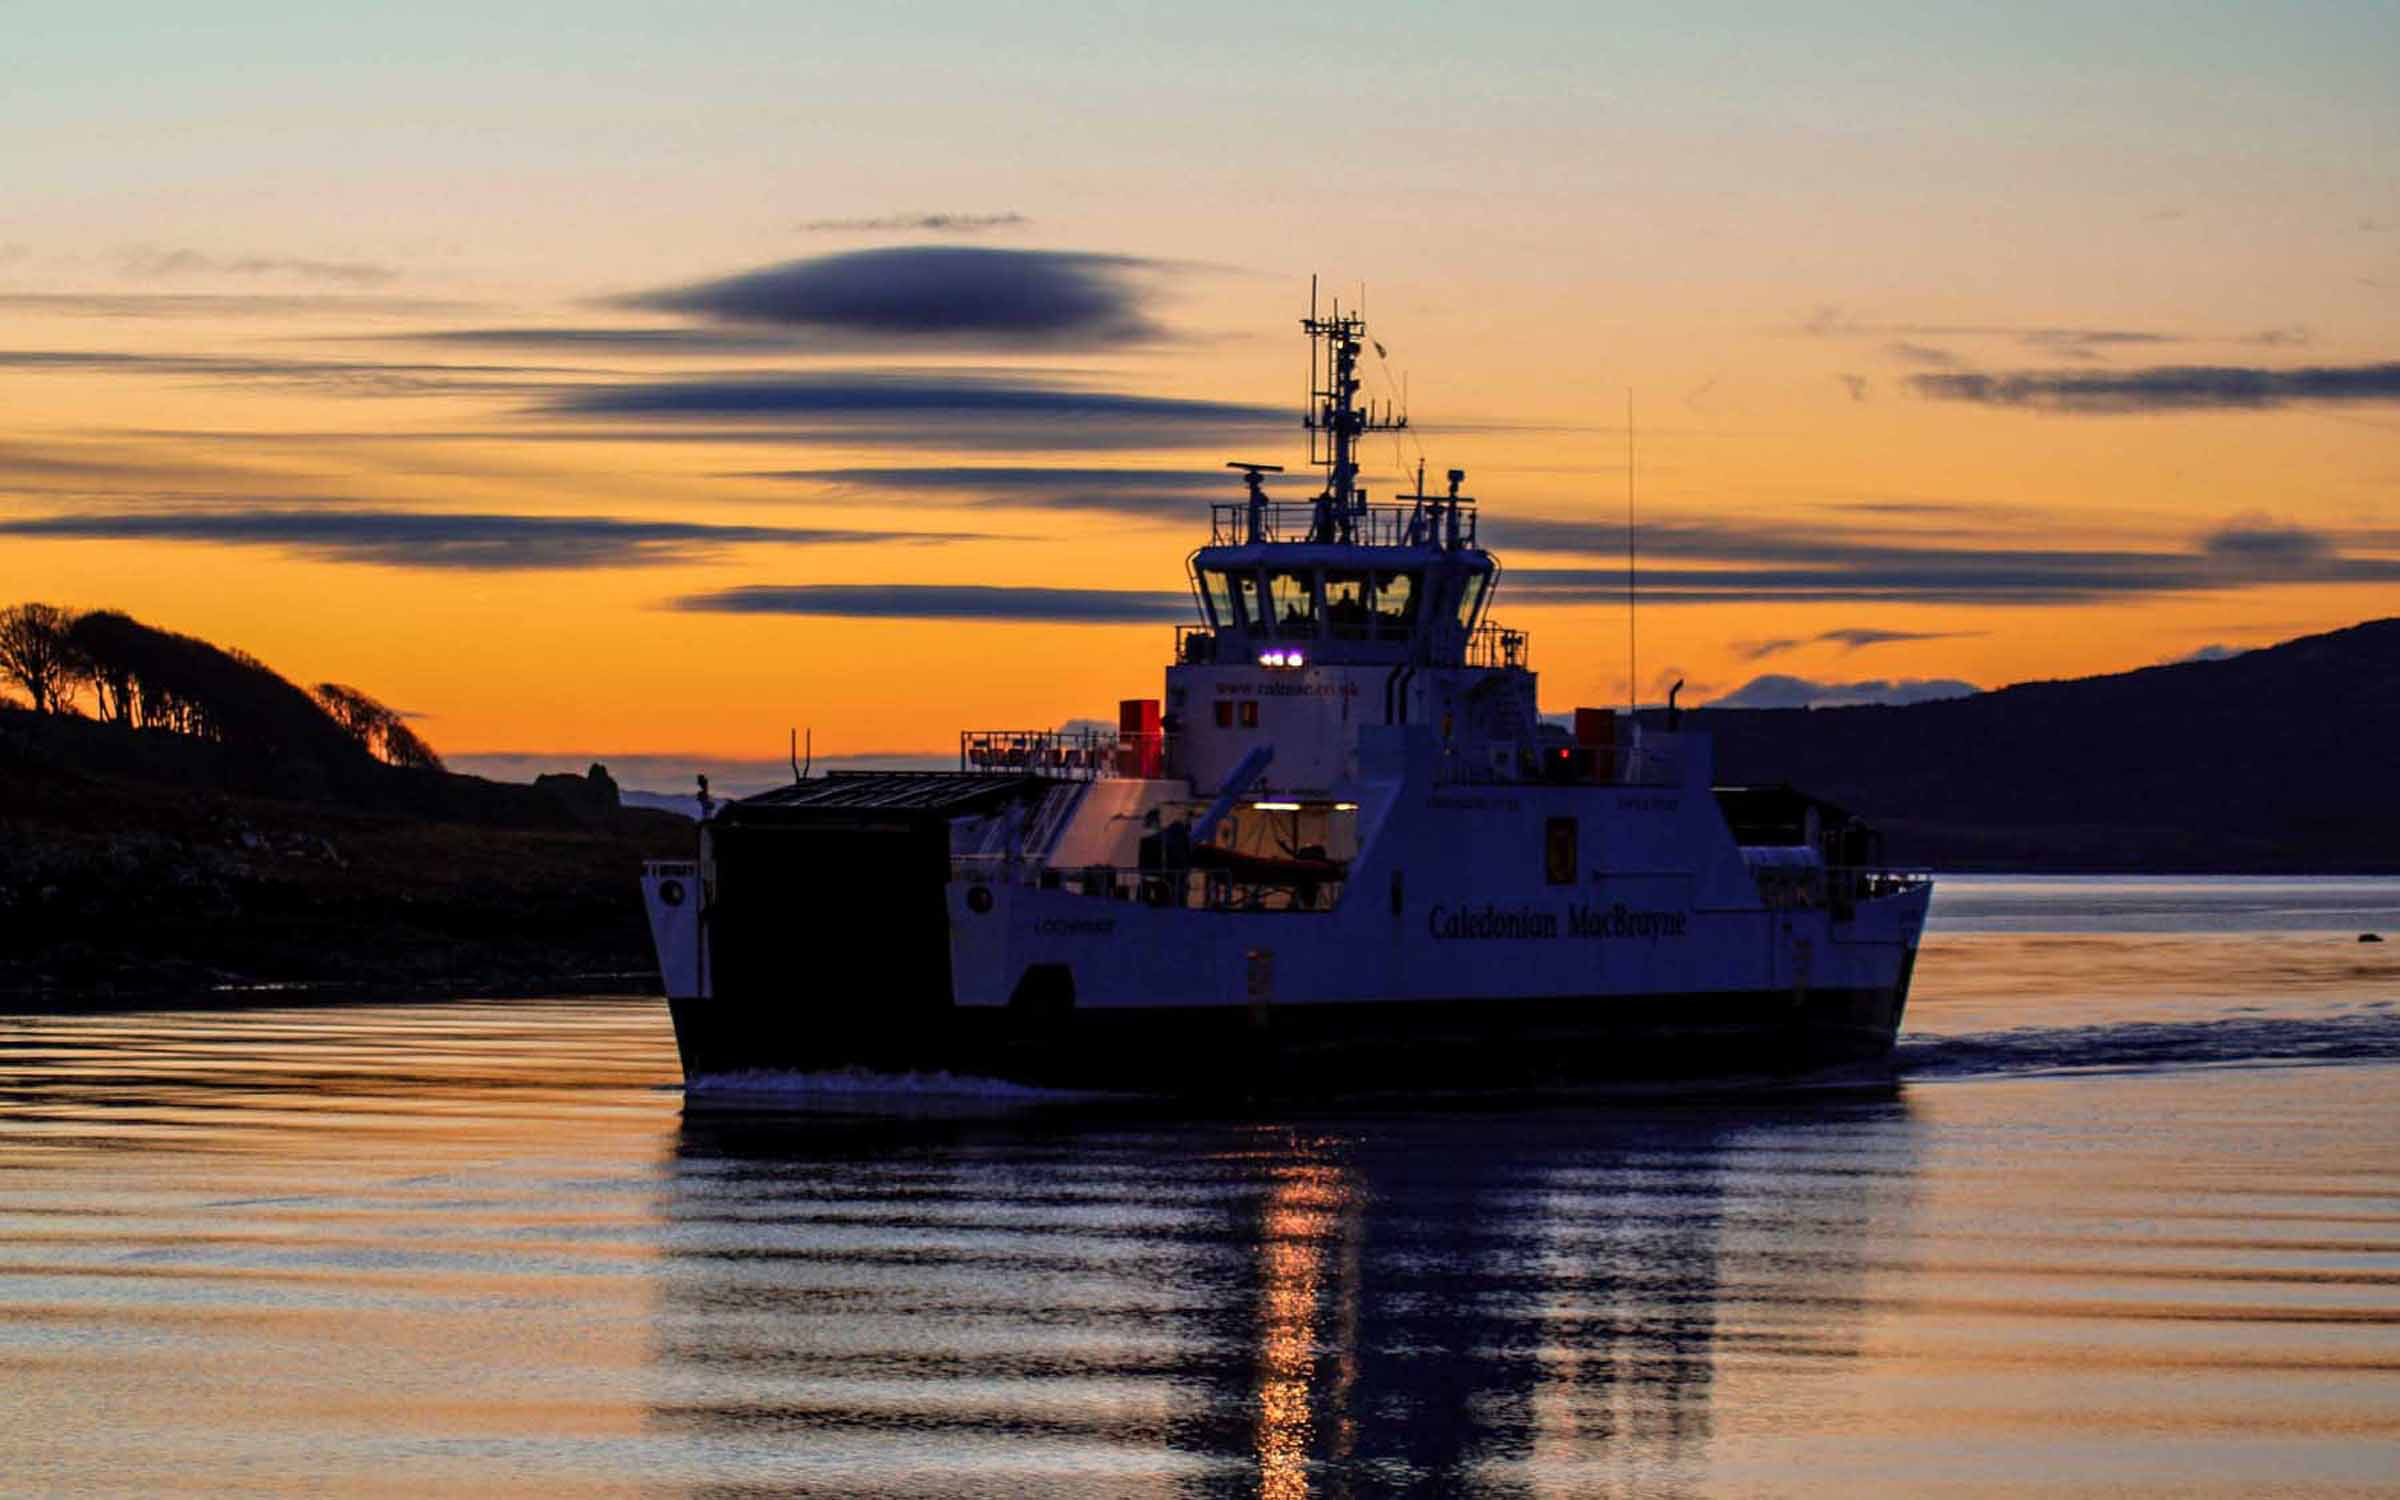 Lochinvar approaching Lochaline at sunset (Ships of CalMac)